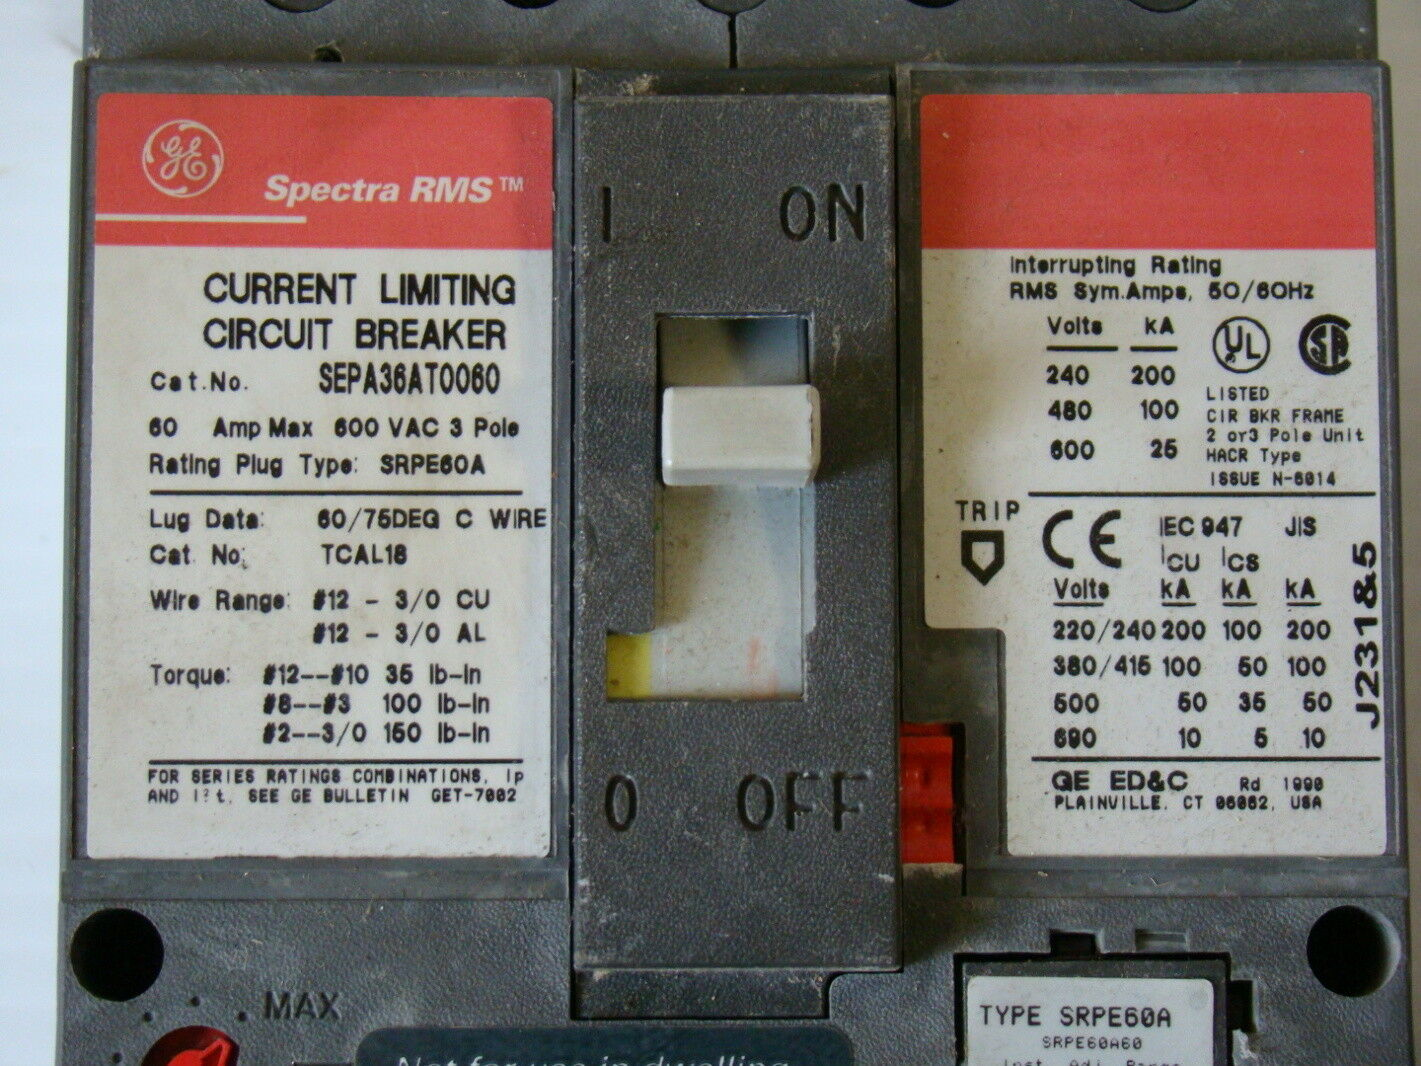 Ge Spectra Rms 60a Current Limiting Circuit Breaker